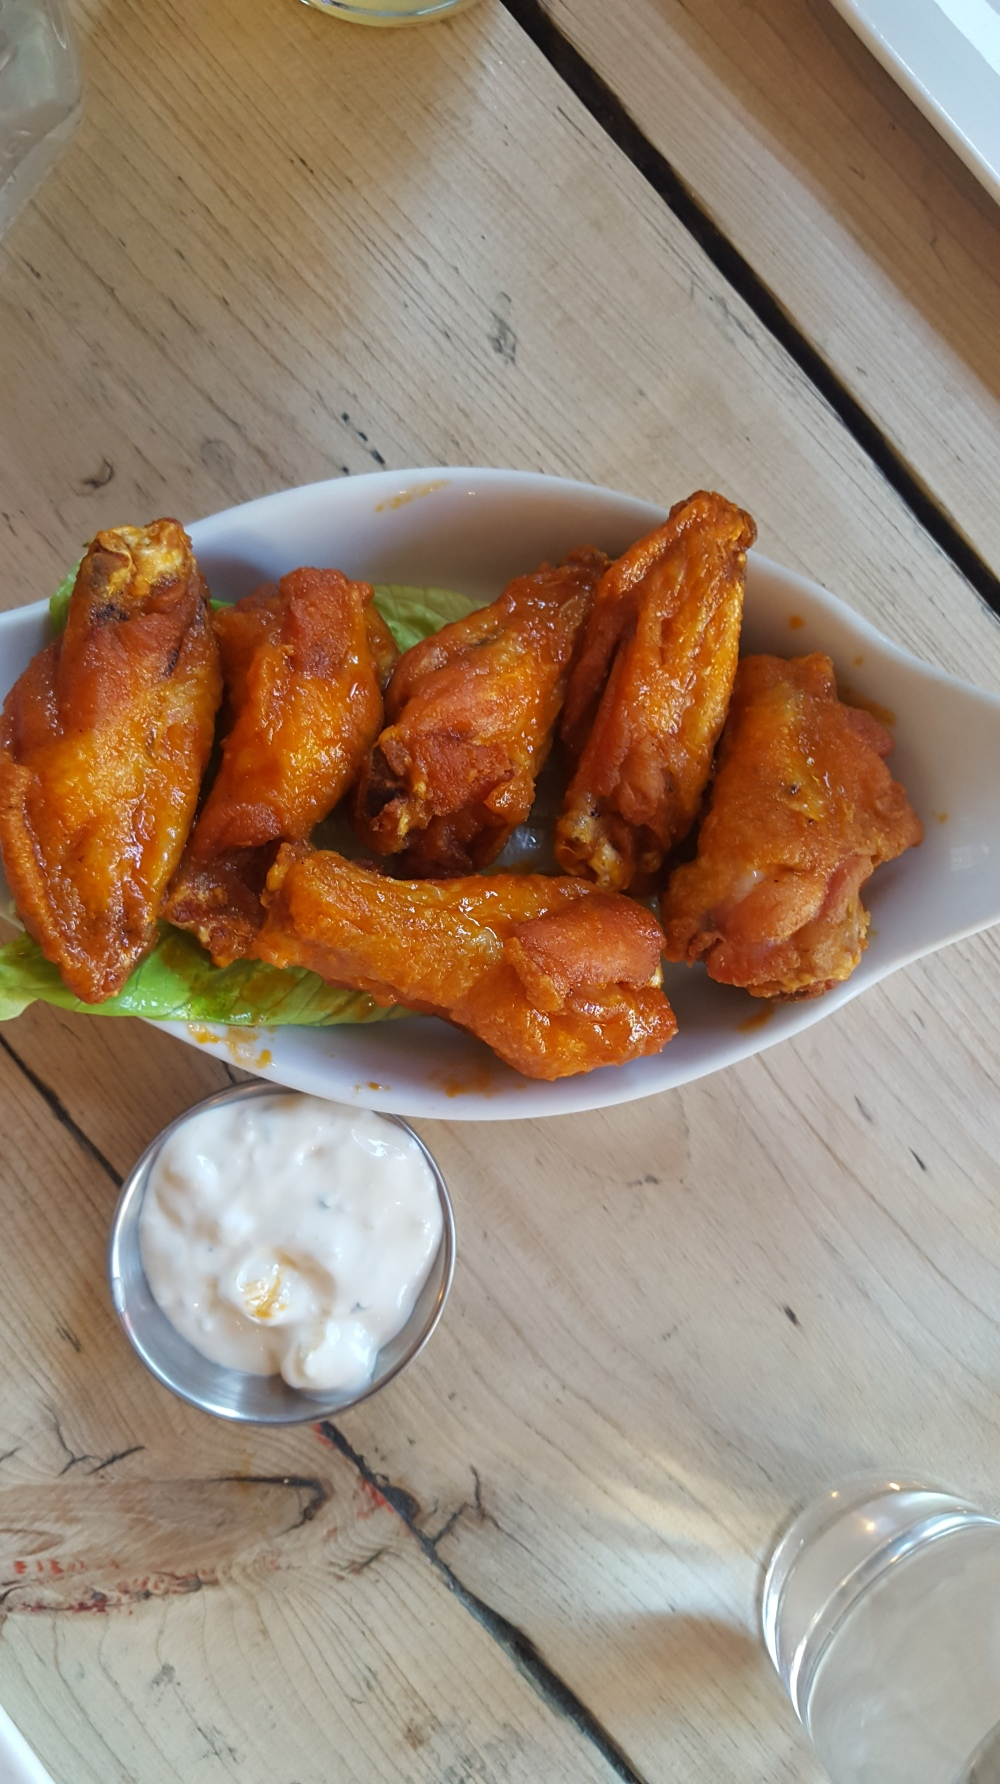 Dukes wings